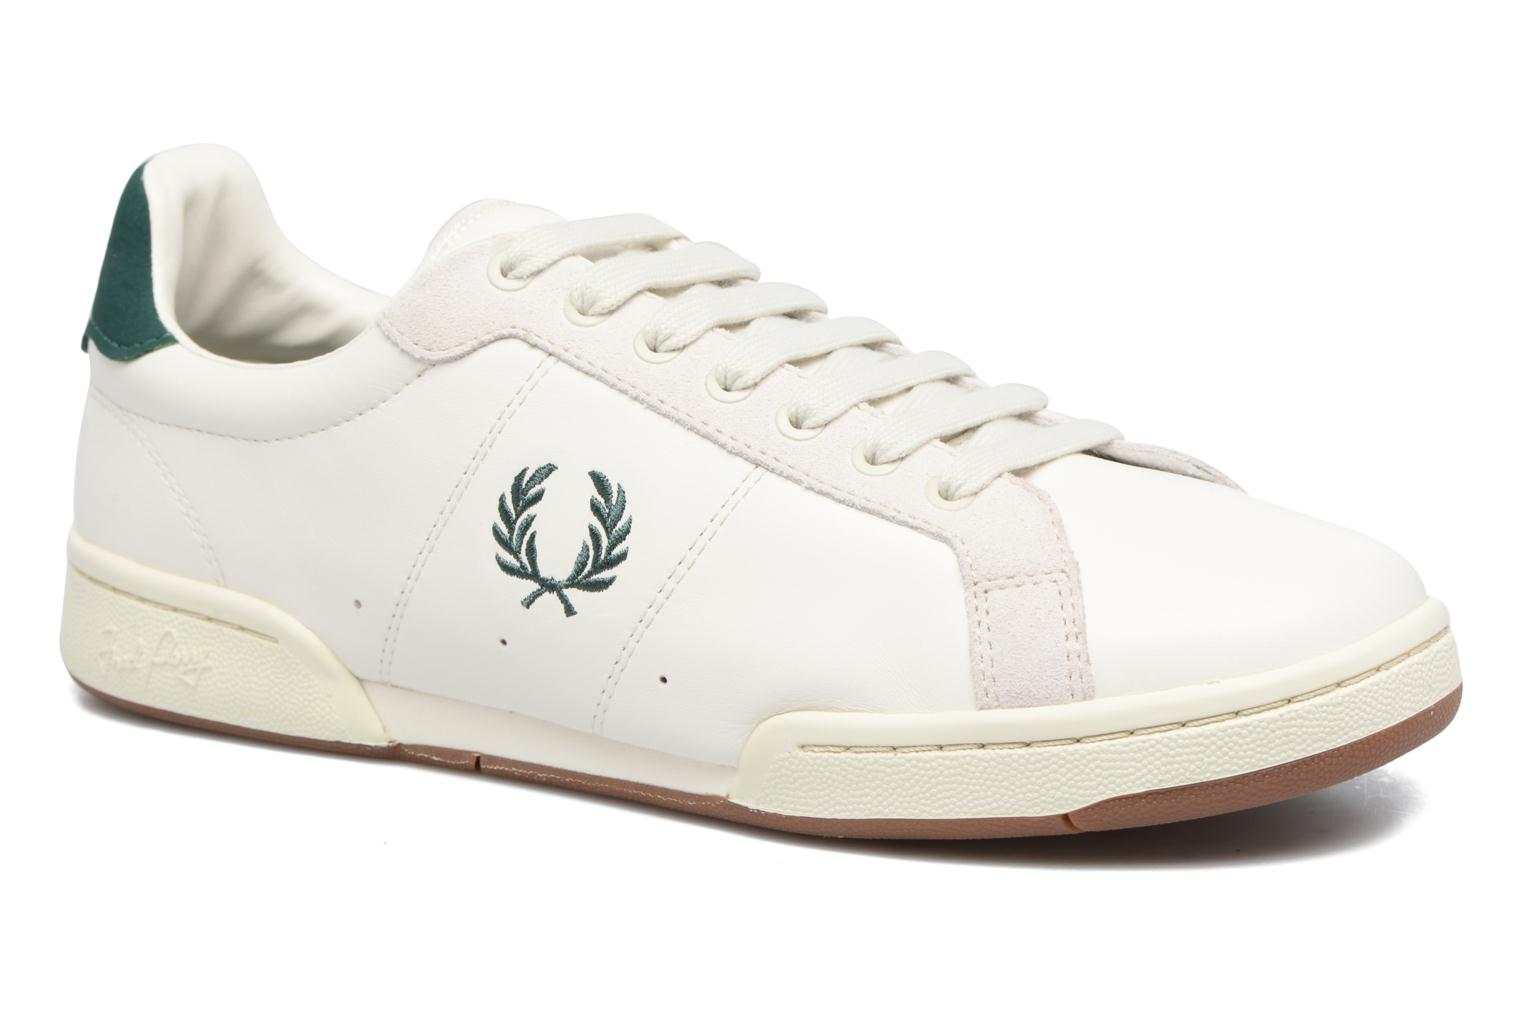 Marques Chaussure homme Fred Perry homme B722 Light Ecru